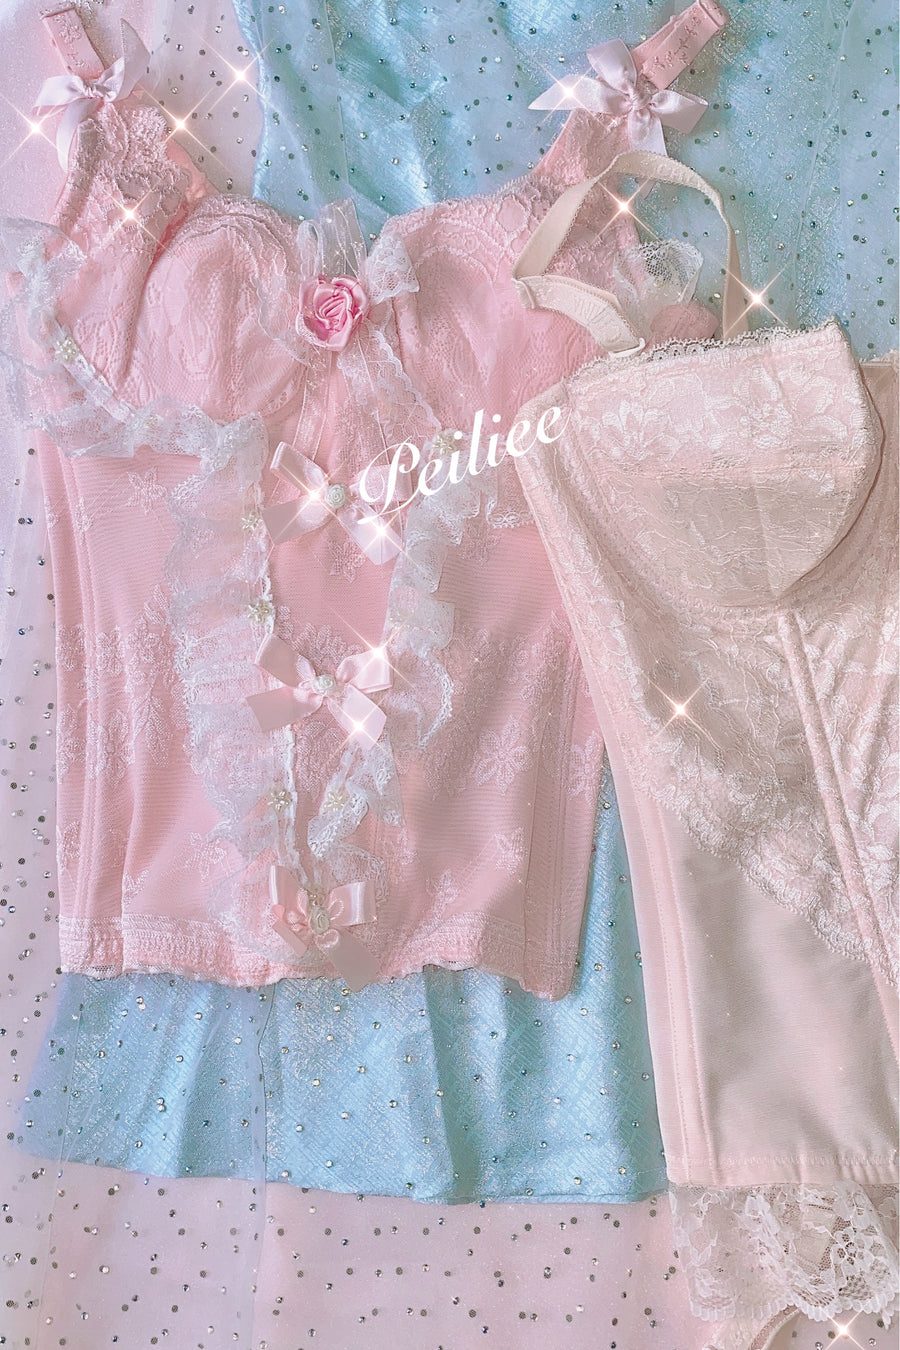 Standard Version No Additional Deco Faded Sakura Doll Handmade Lace Body Corset - Peiliee Shop